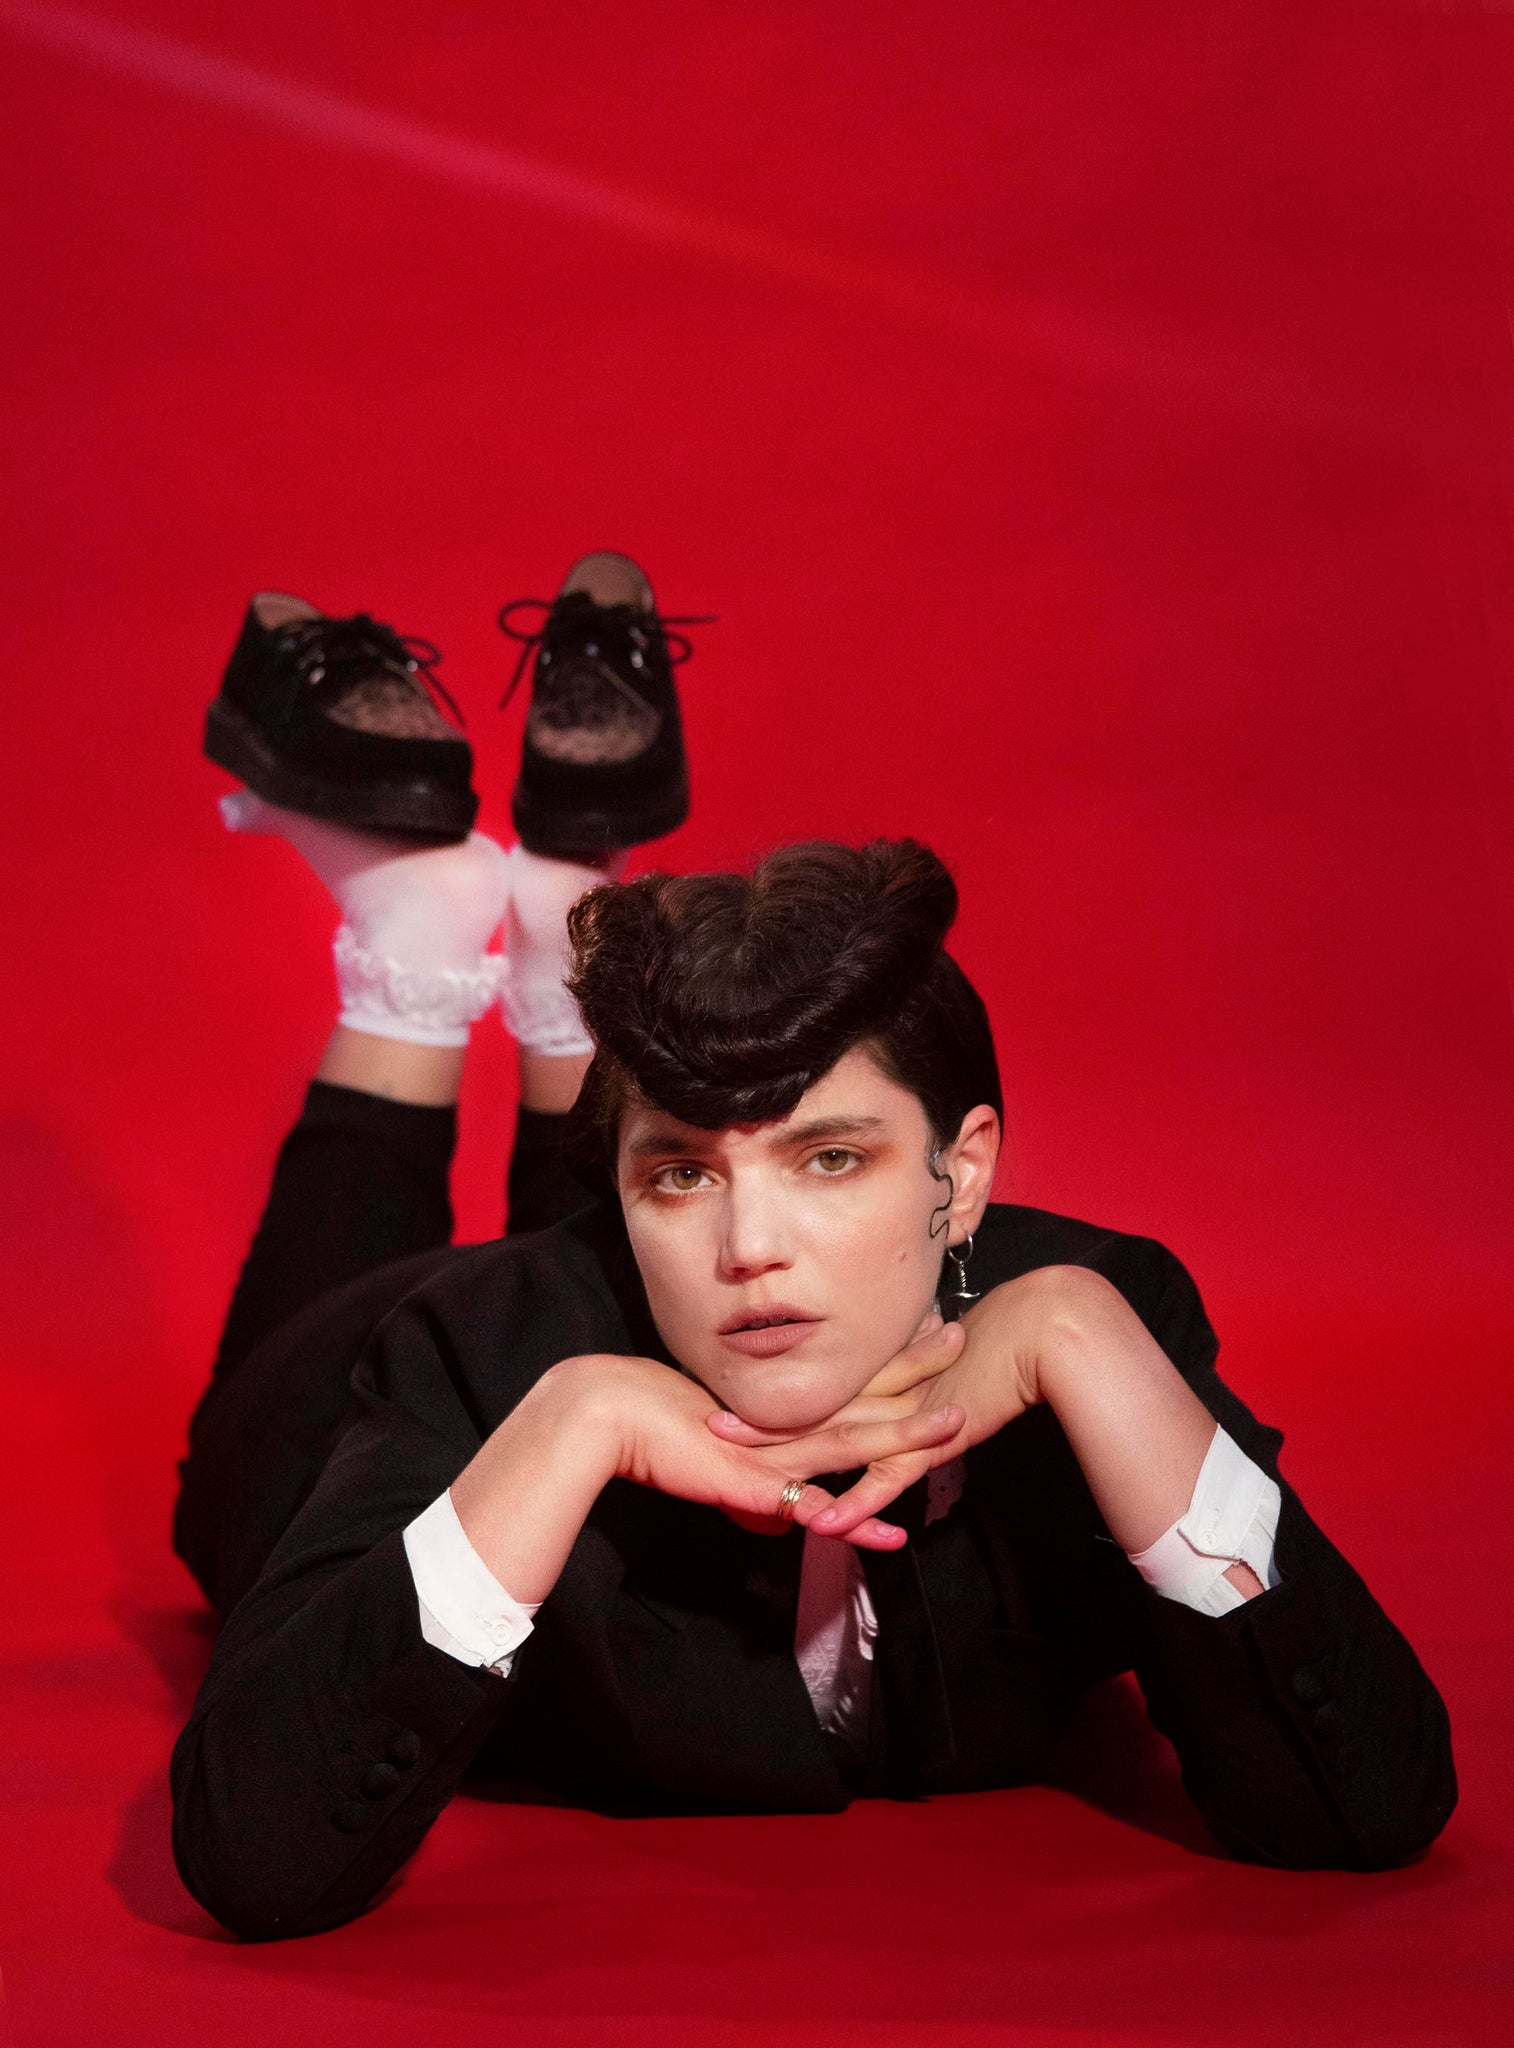 Soko, Teddy Boy. Hair and Makeup by Leticia Llesmin